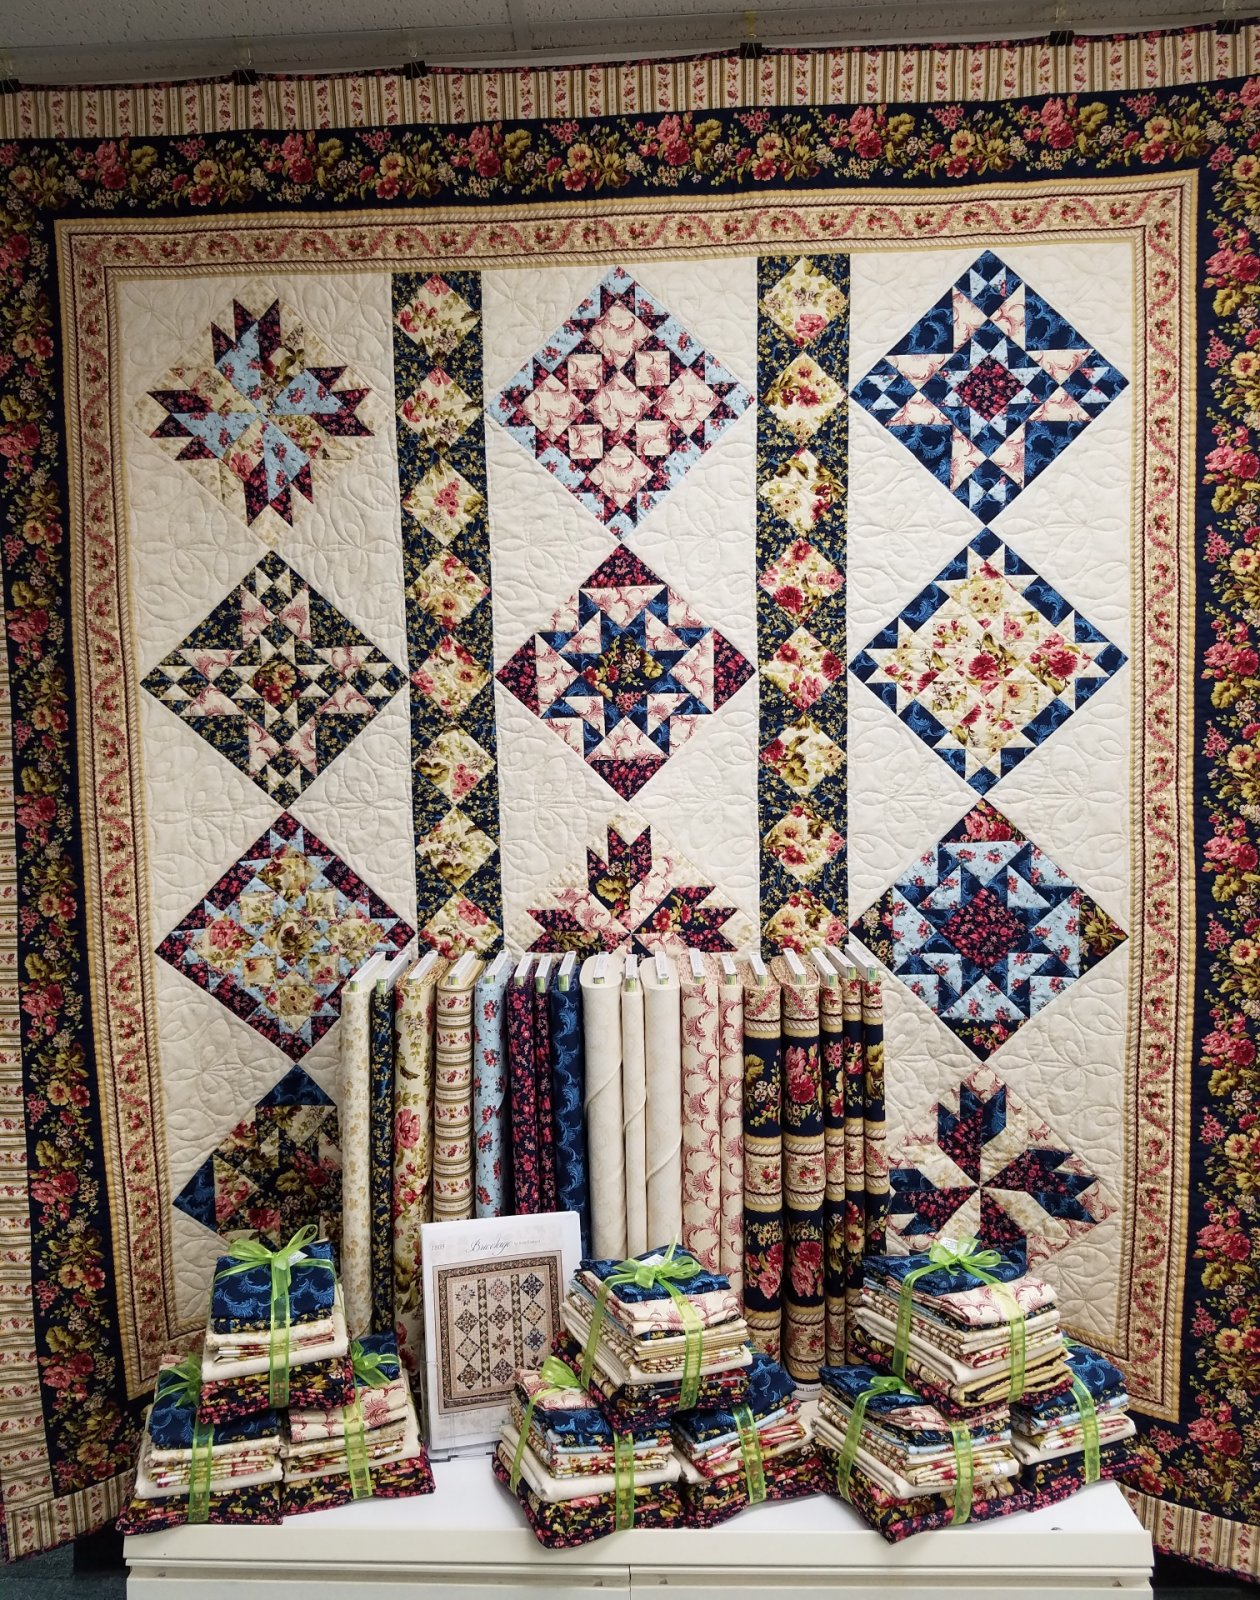 Bricolage Quilt Kit, remaining 2 kits are  -25%